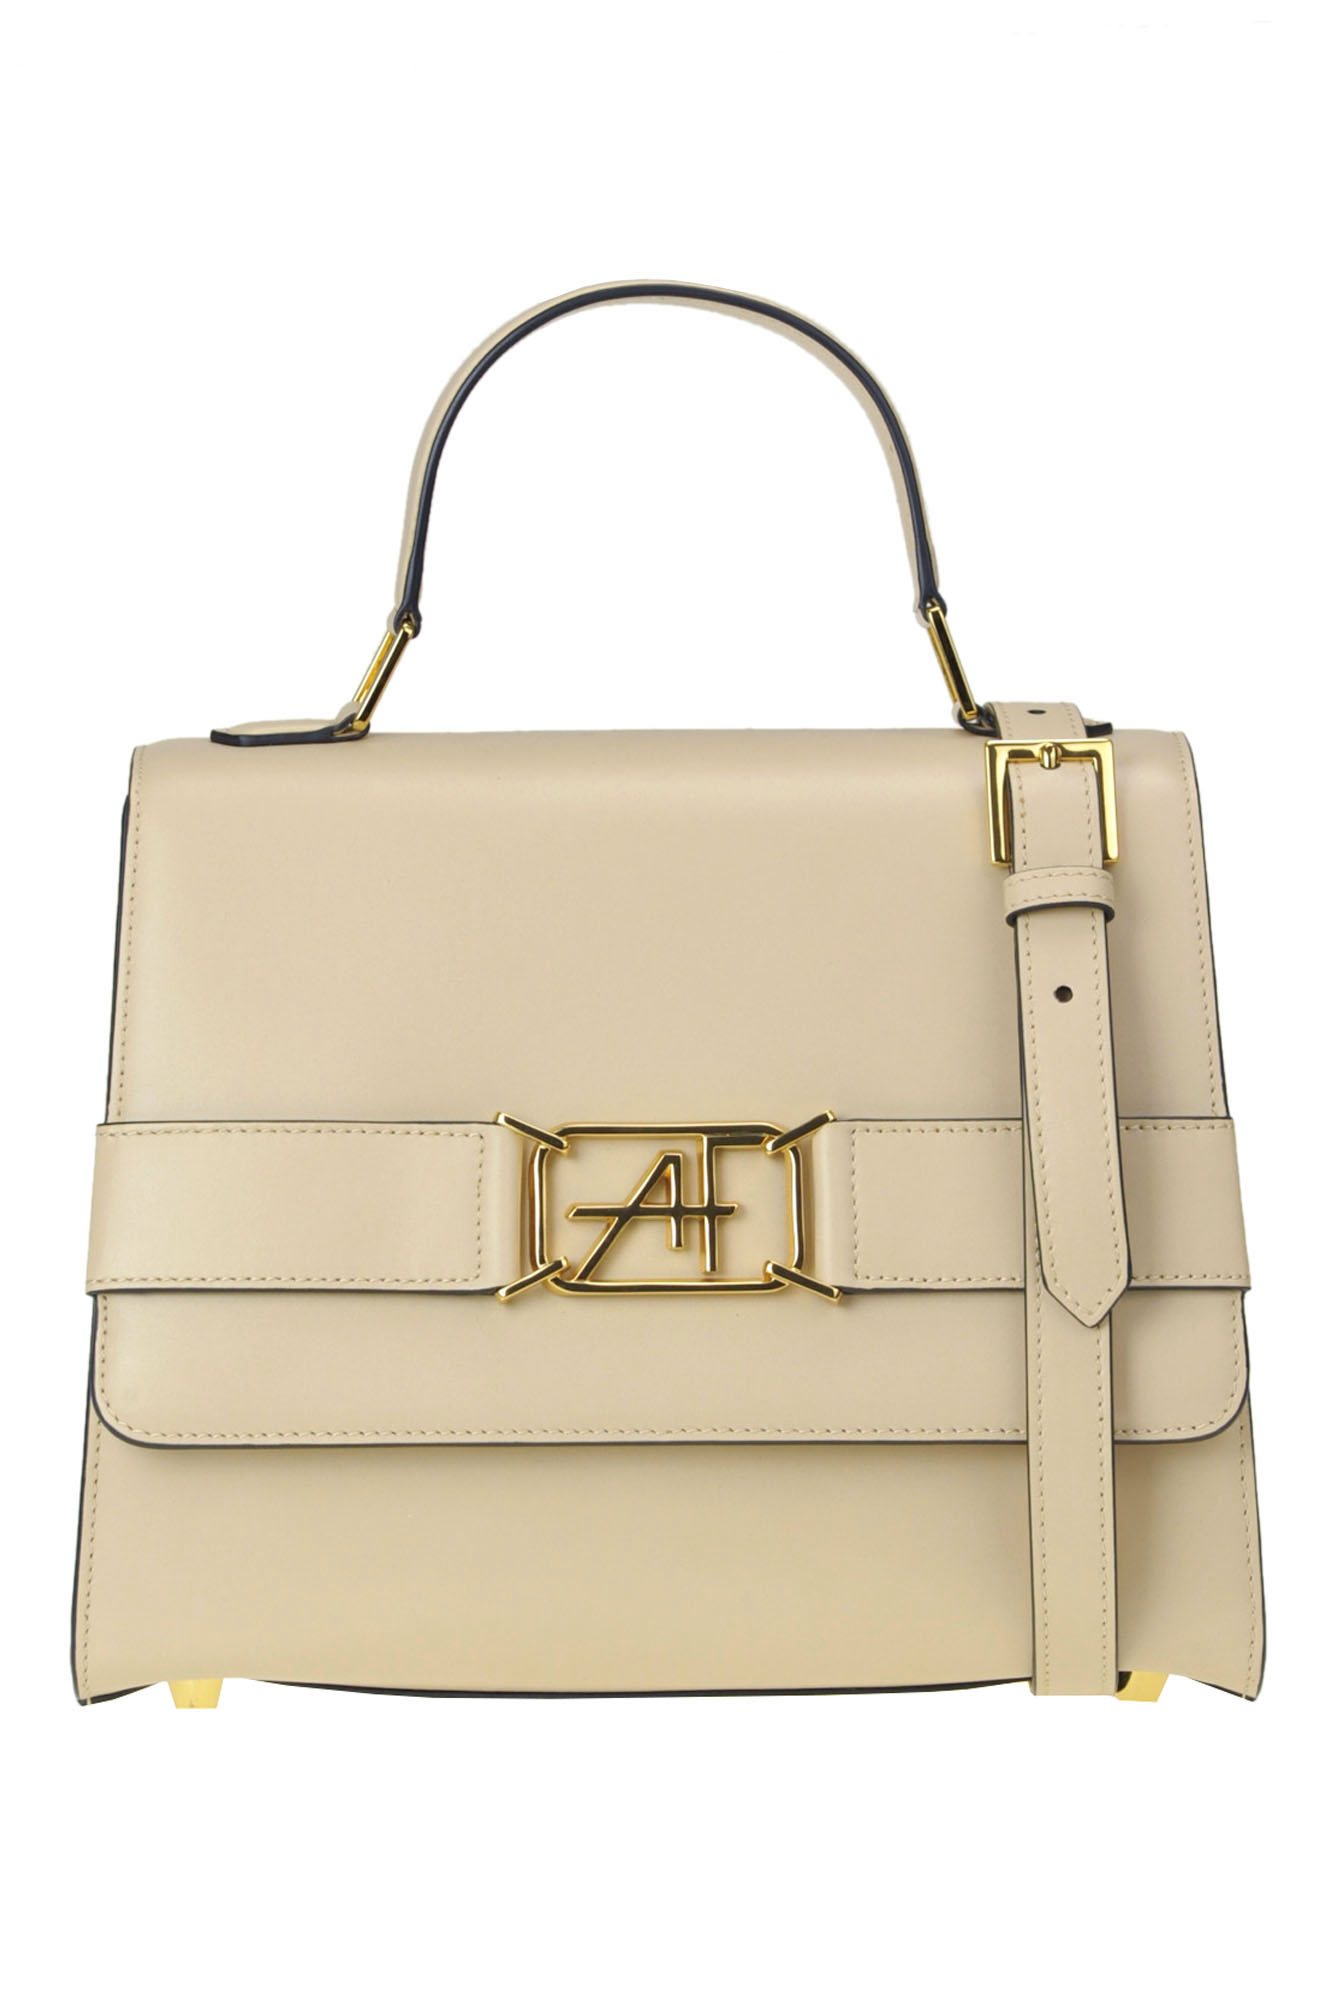 Alberta Ferretti Leathers LEATHER BAG